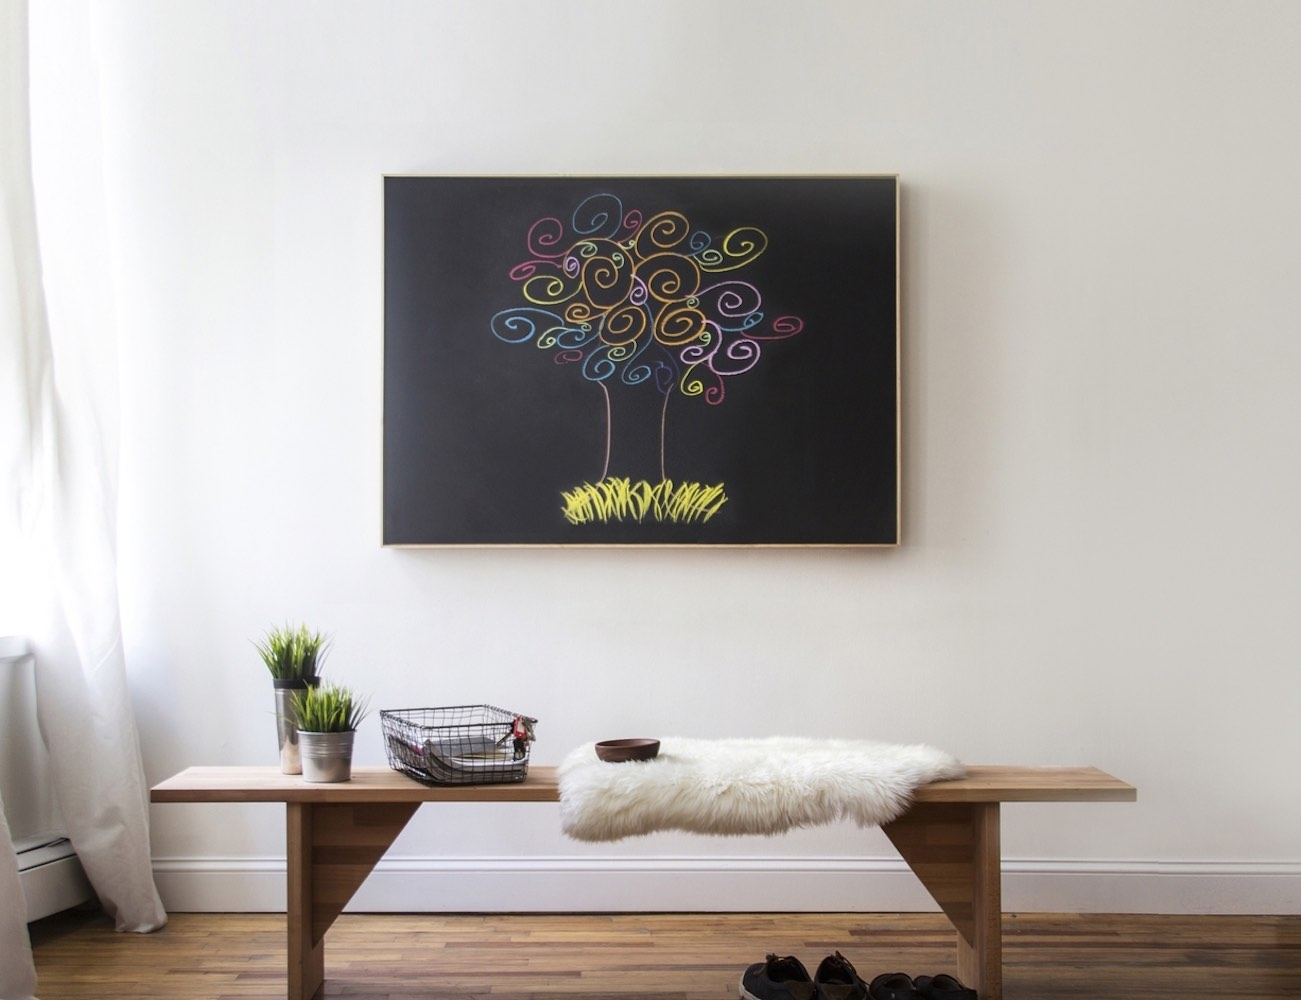 Soundwall – Smart Wall Speaker + Canvas Art